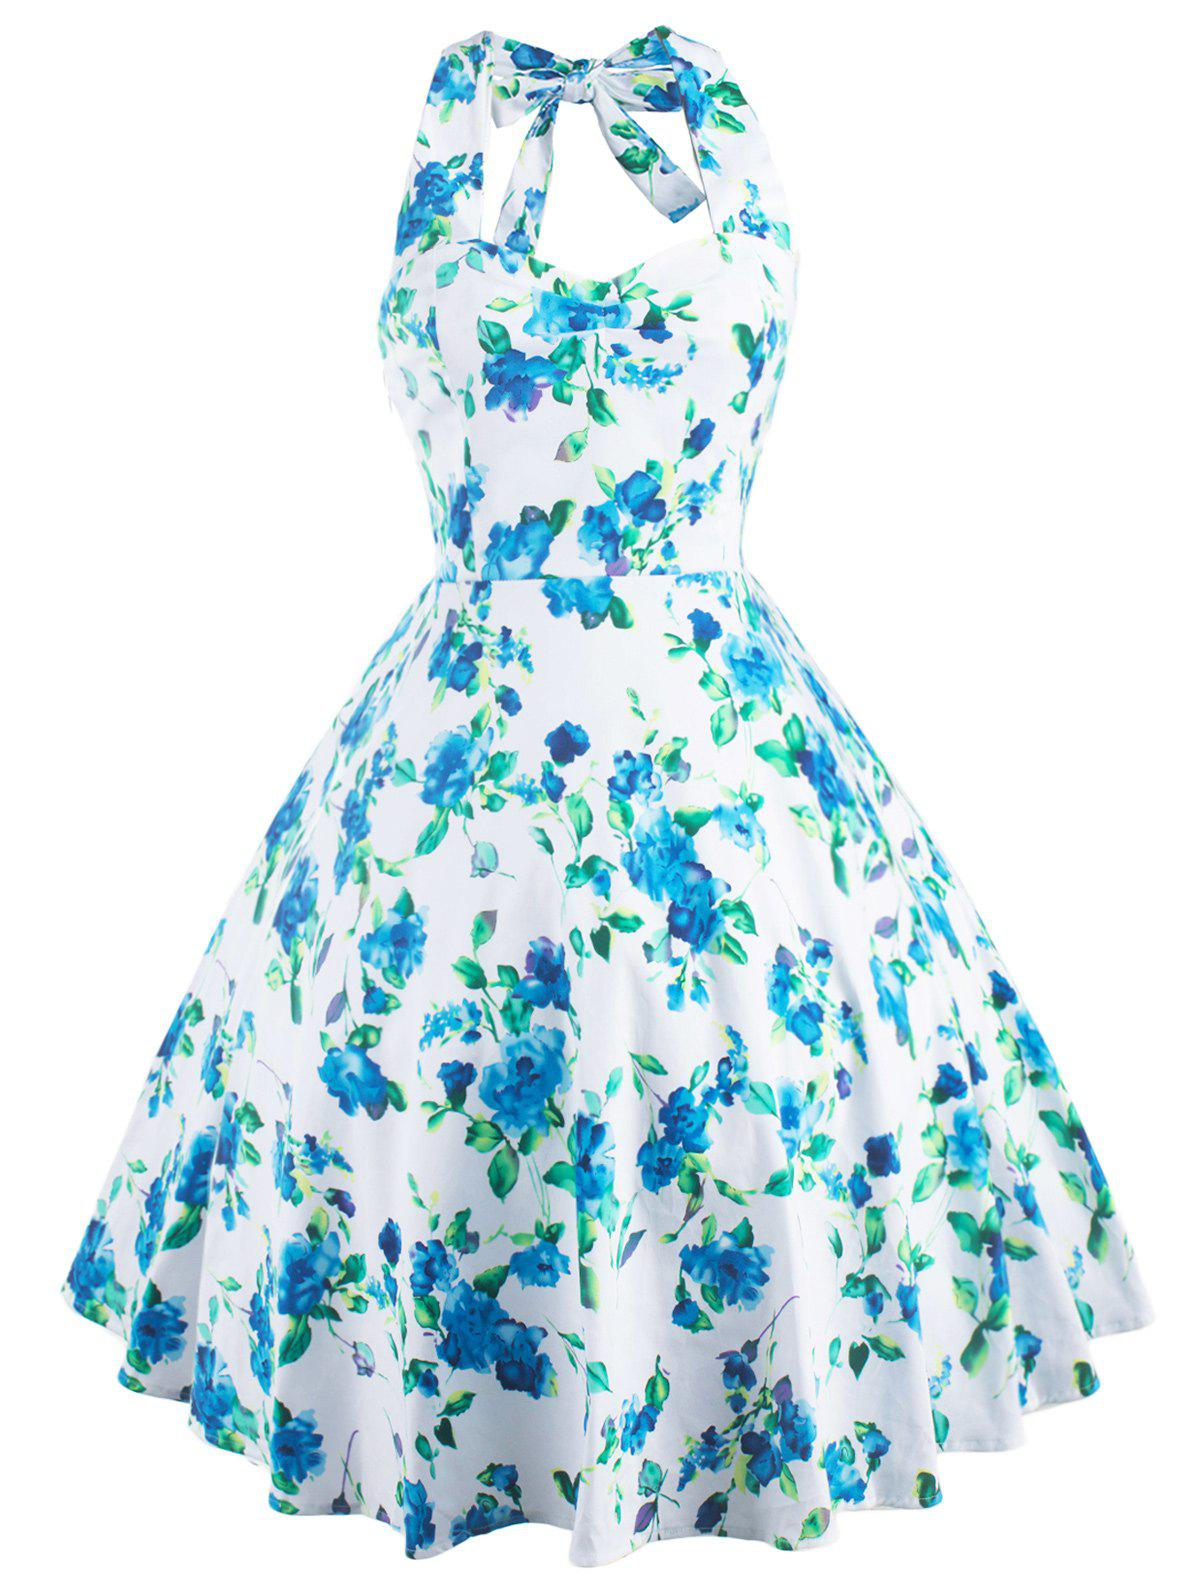 Sale Vintage Halter Neck Floral Print Party Cocktail Print Dress